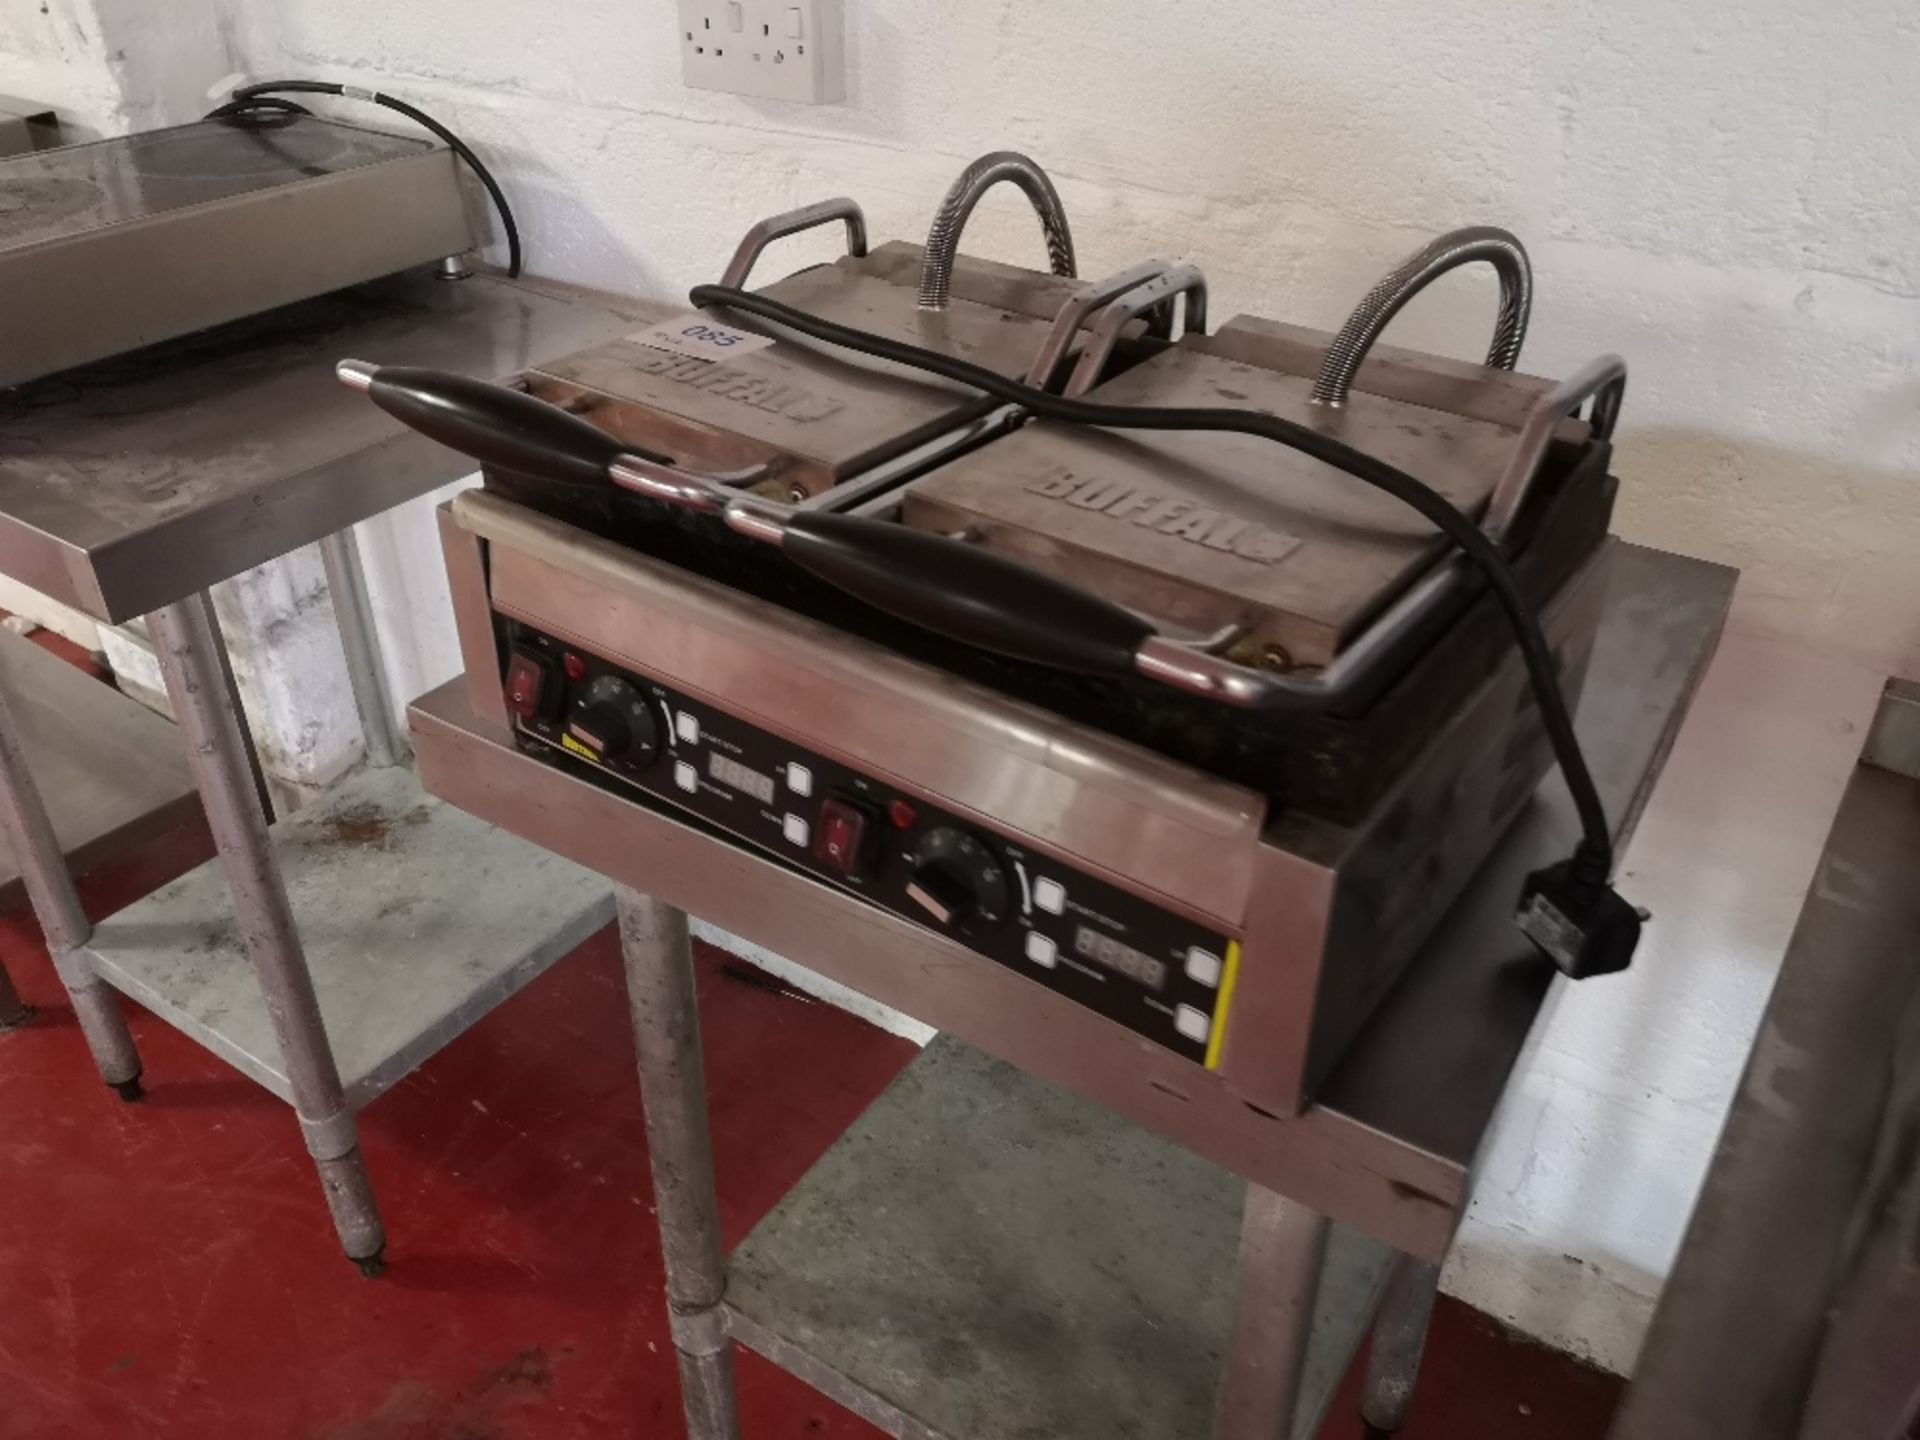 Buffalo L553-B-03 Double Contact Grill - Image 2 of 5